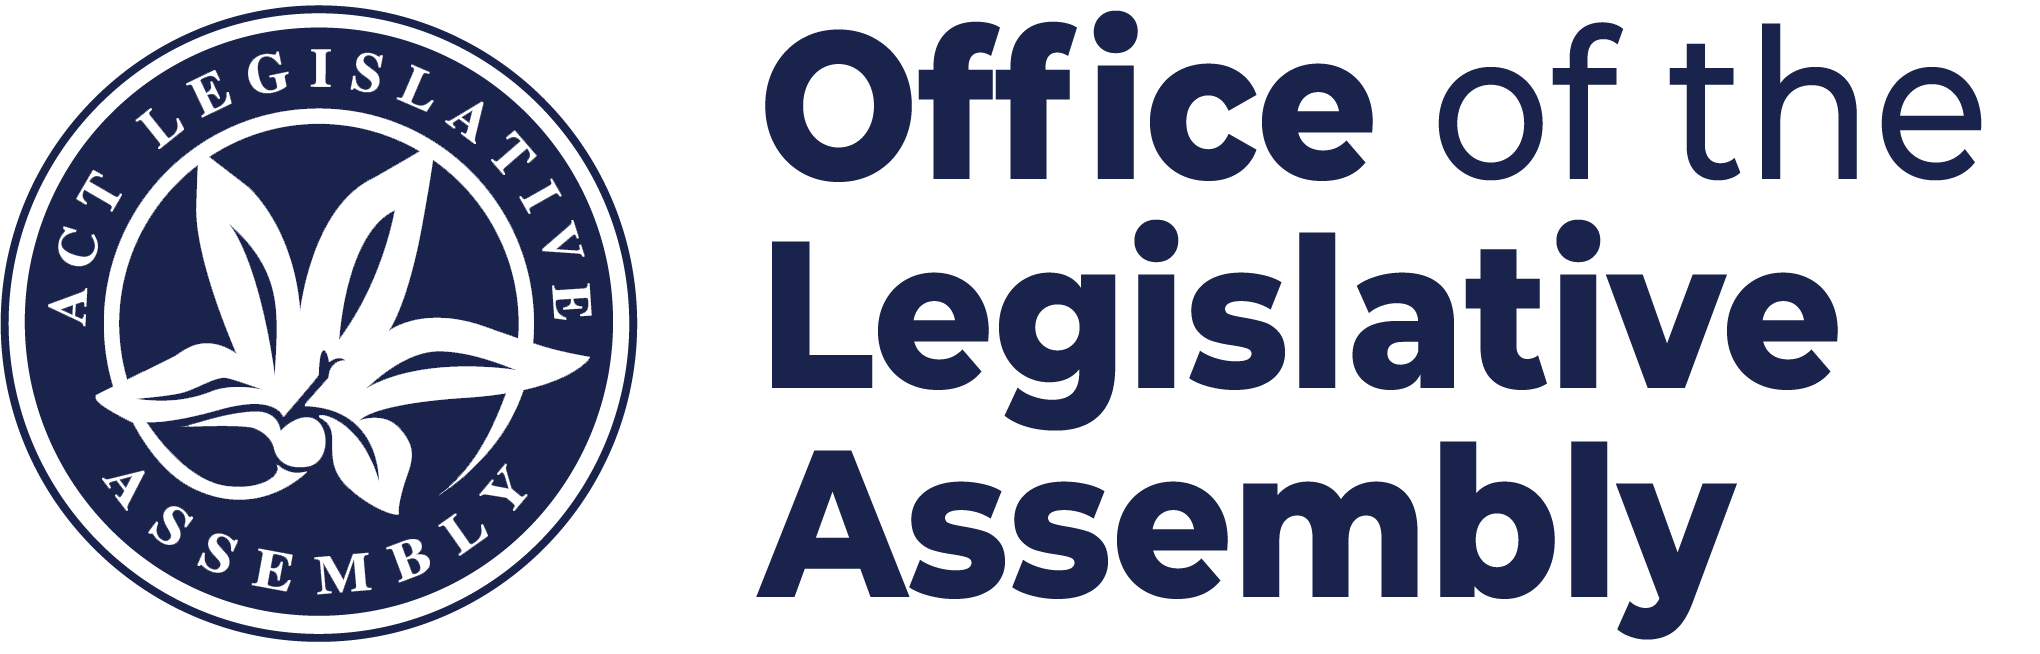 Logo of the Office of the Legislative Assembly